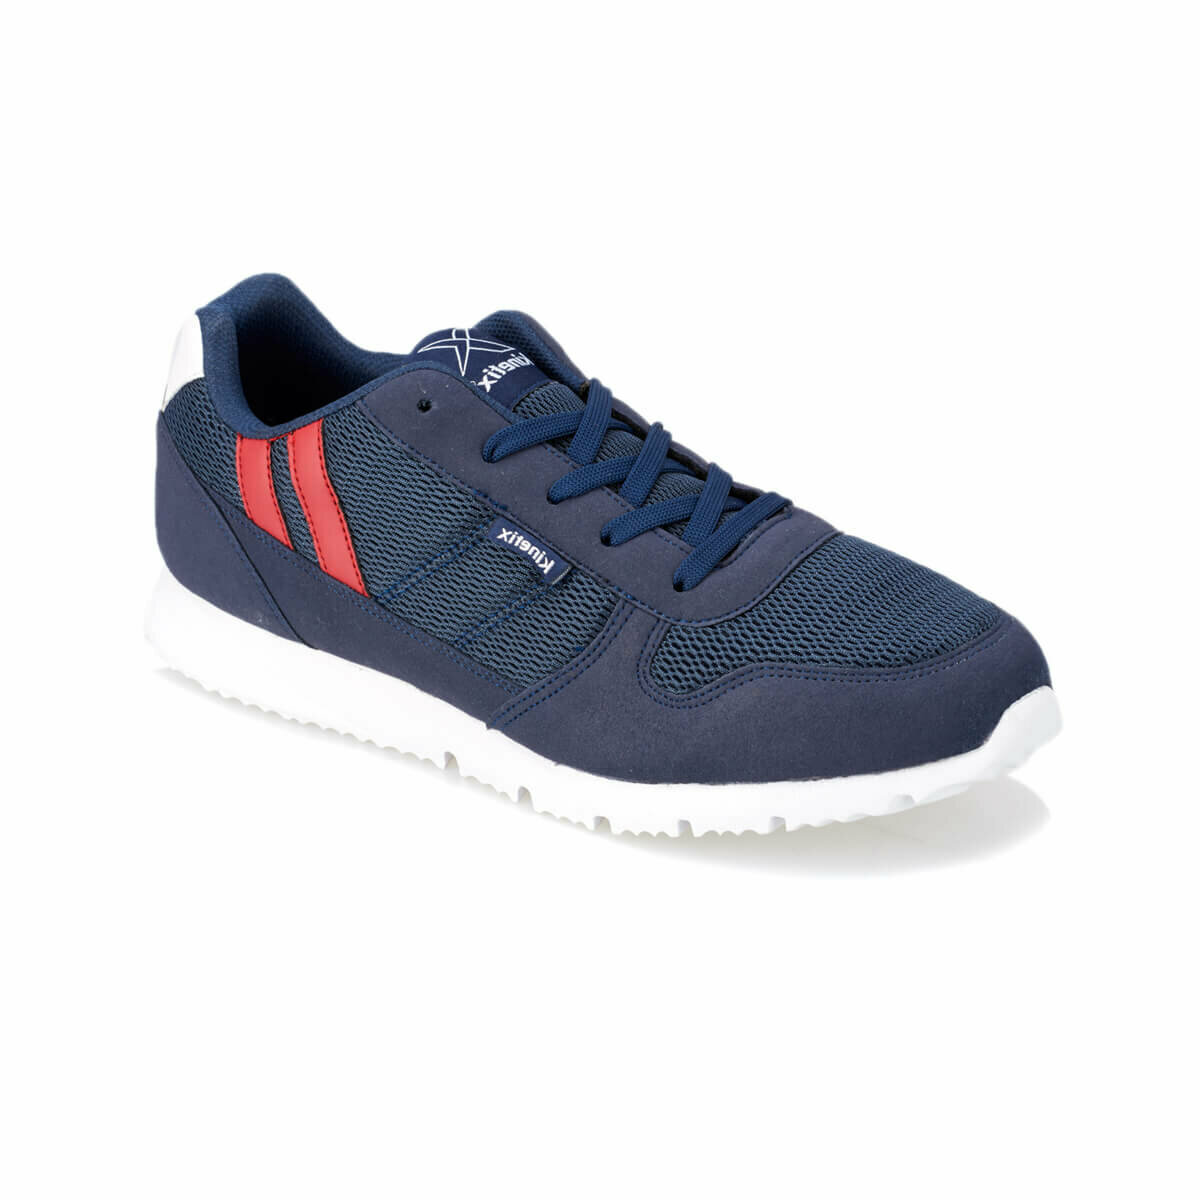 FLO CORDELIA MESH M Navy Blue Men 'S Sneaker Shoes KINETIX